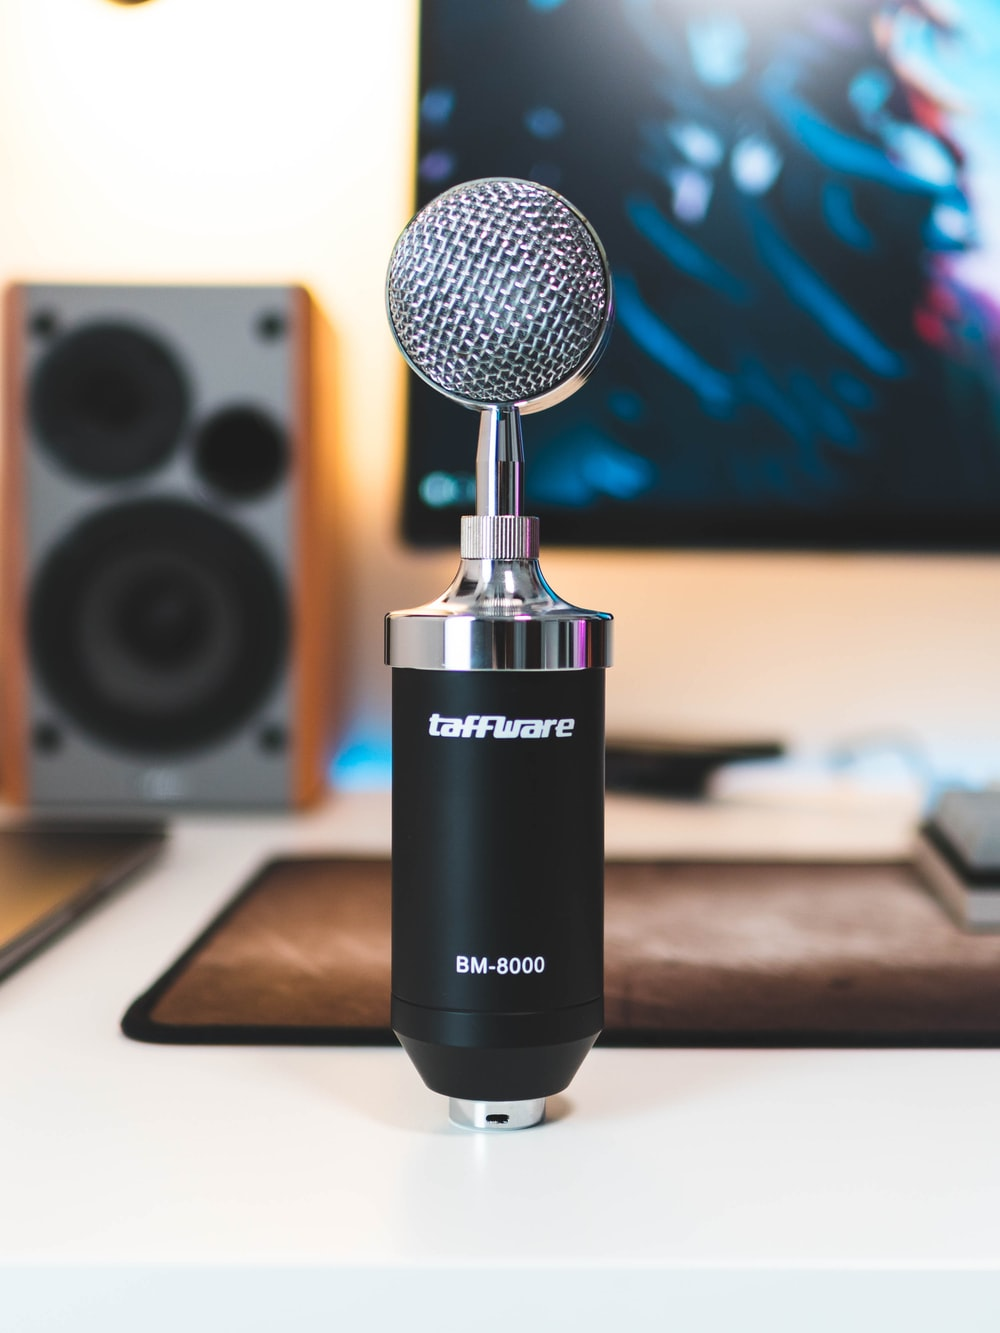 gray and black Taffware BM-8000 microphone on white surface